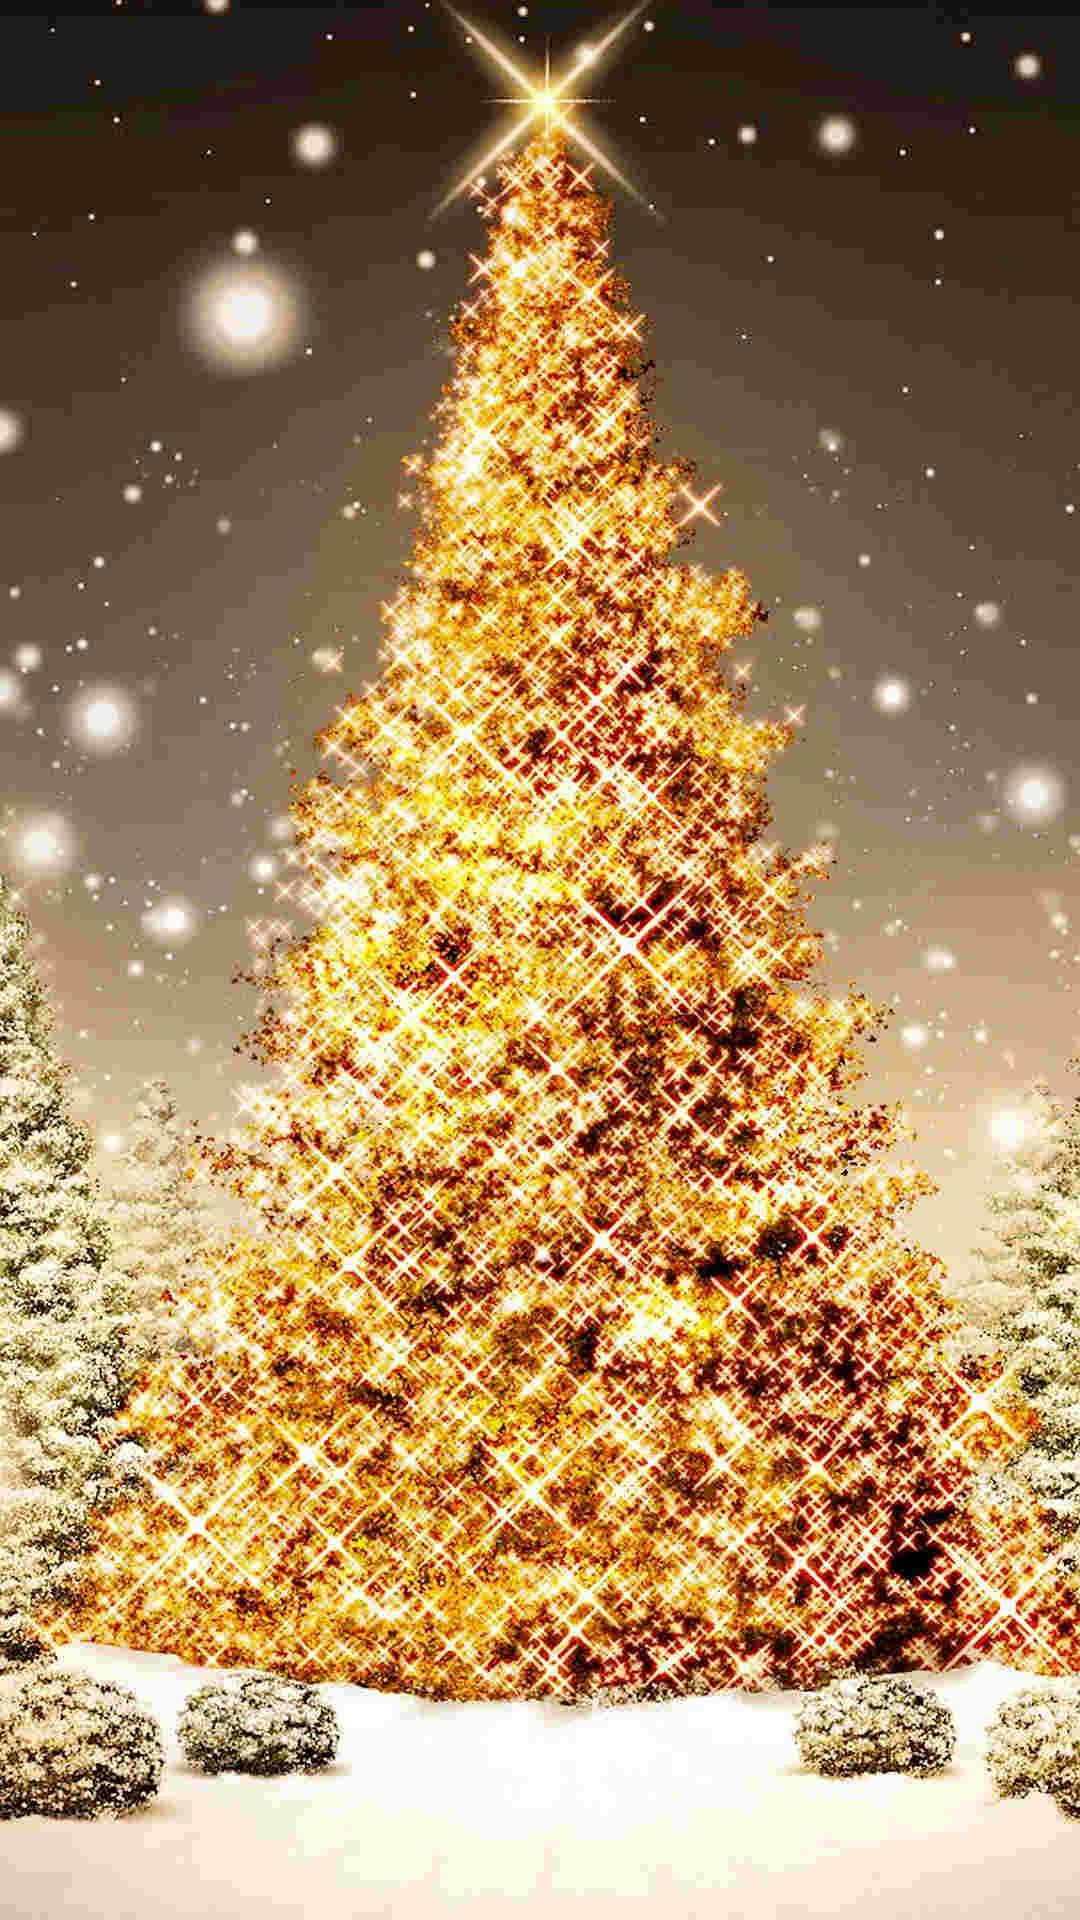 Gold Bling 2014 Christmas Tree Iphone 6 Plus Wallpaper For Girls